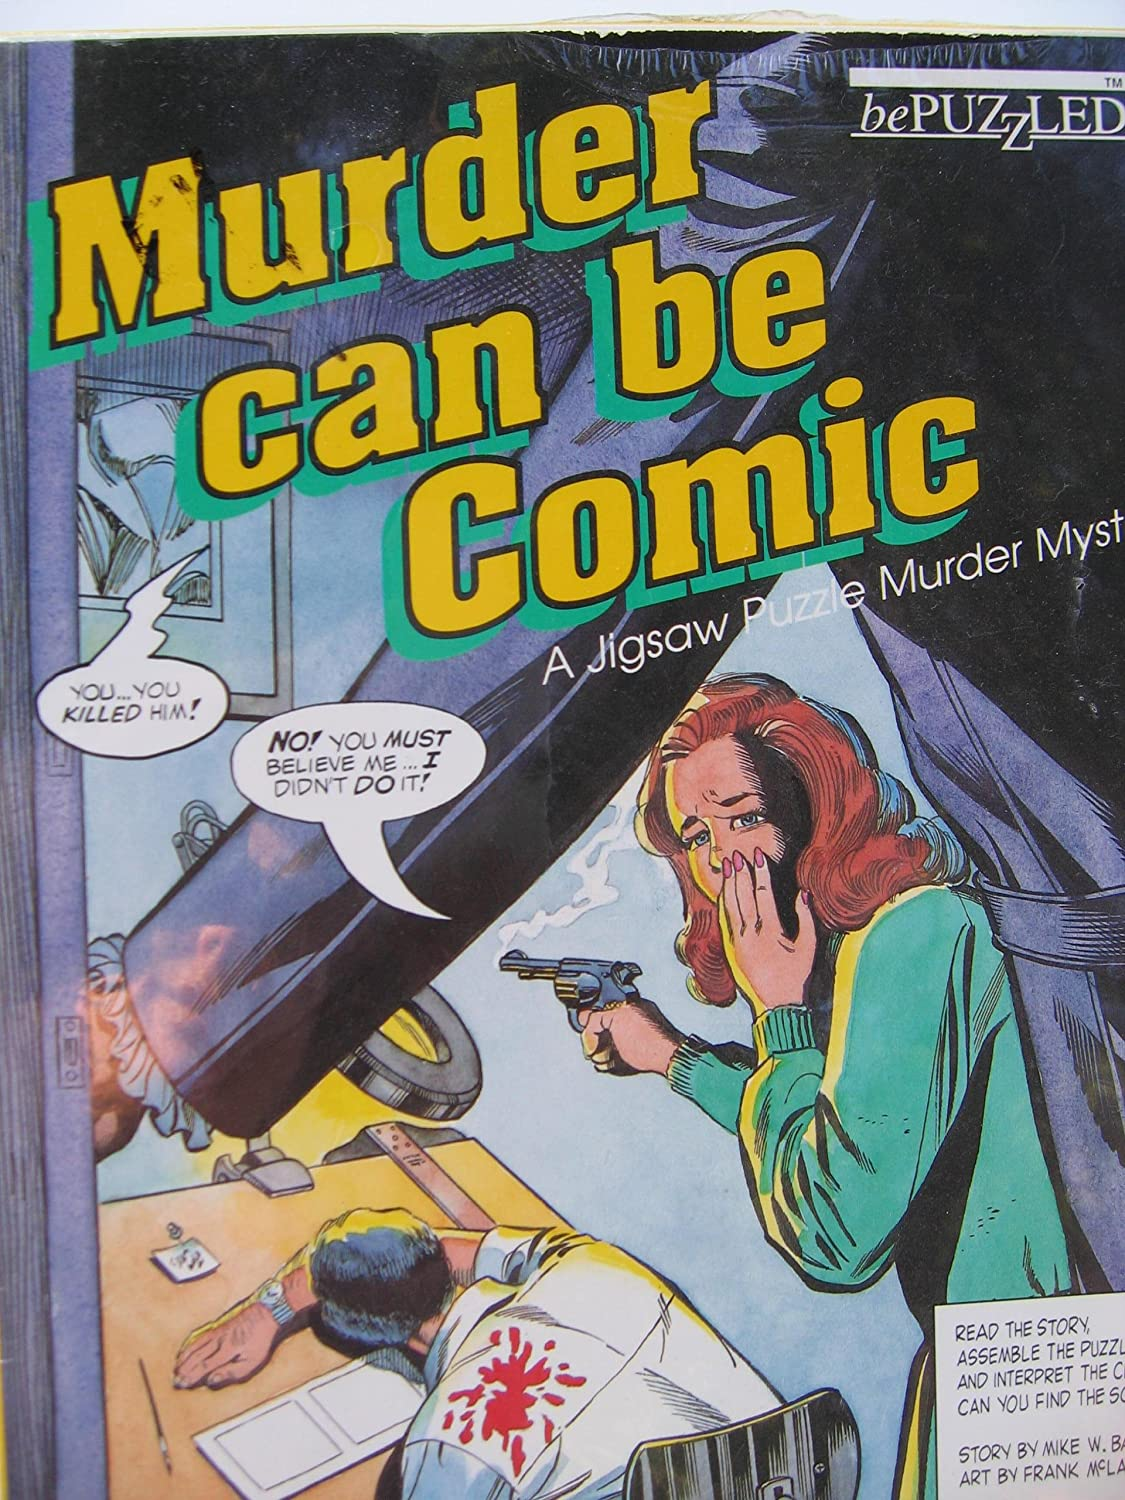 MURDER CAN BE COMIC  A Jigsaw Puzzle Murder Mystery